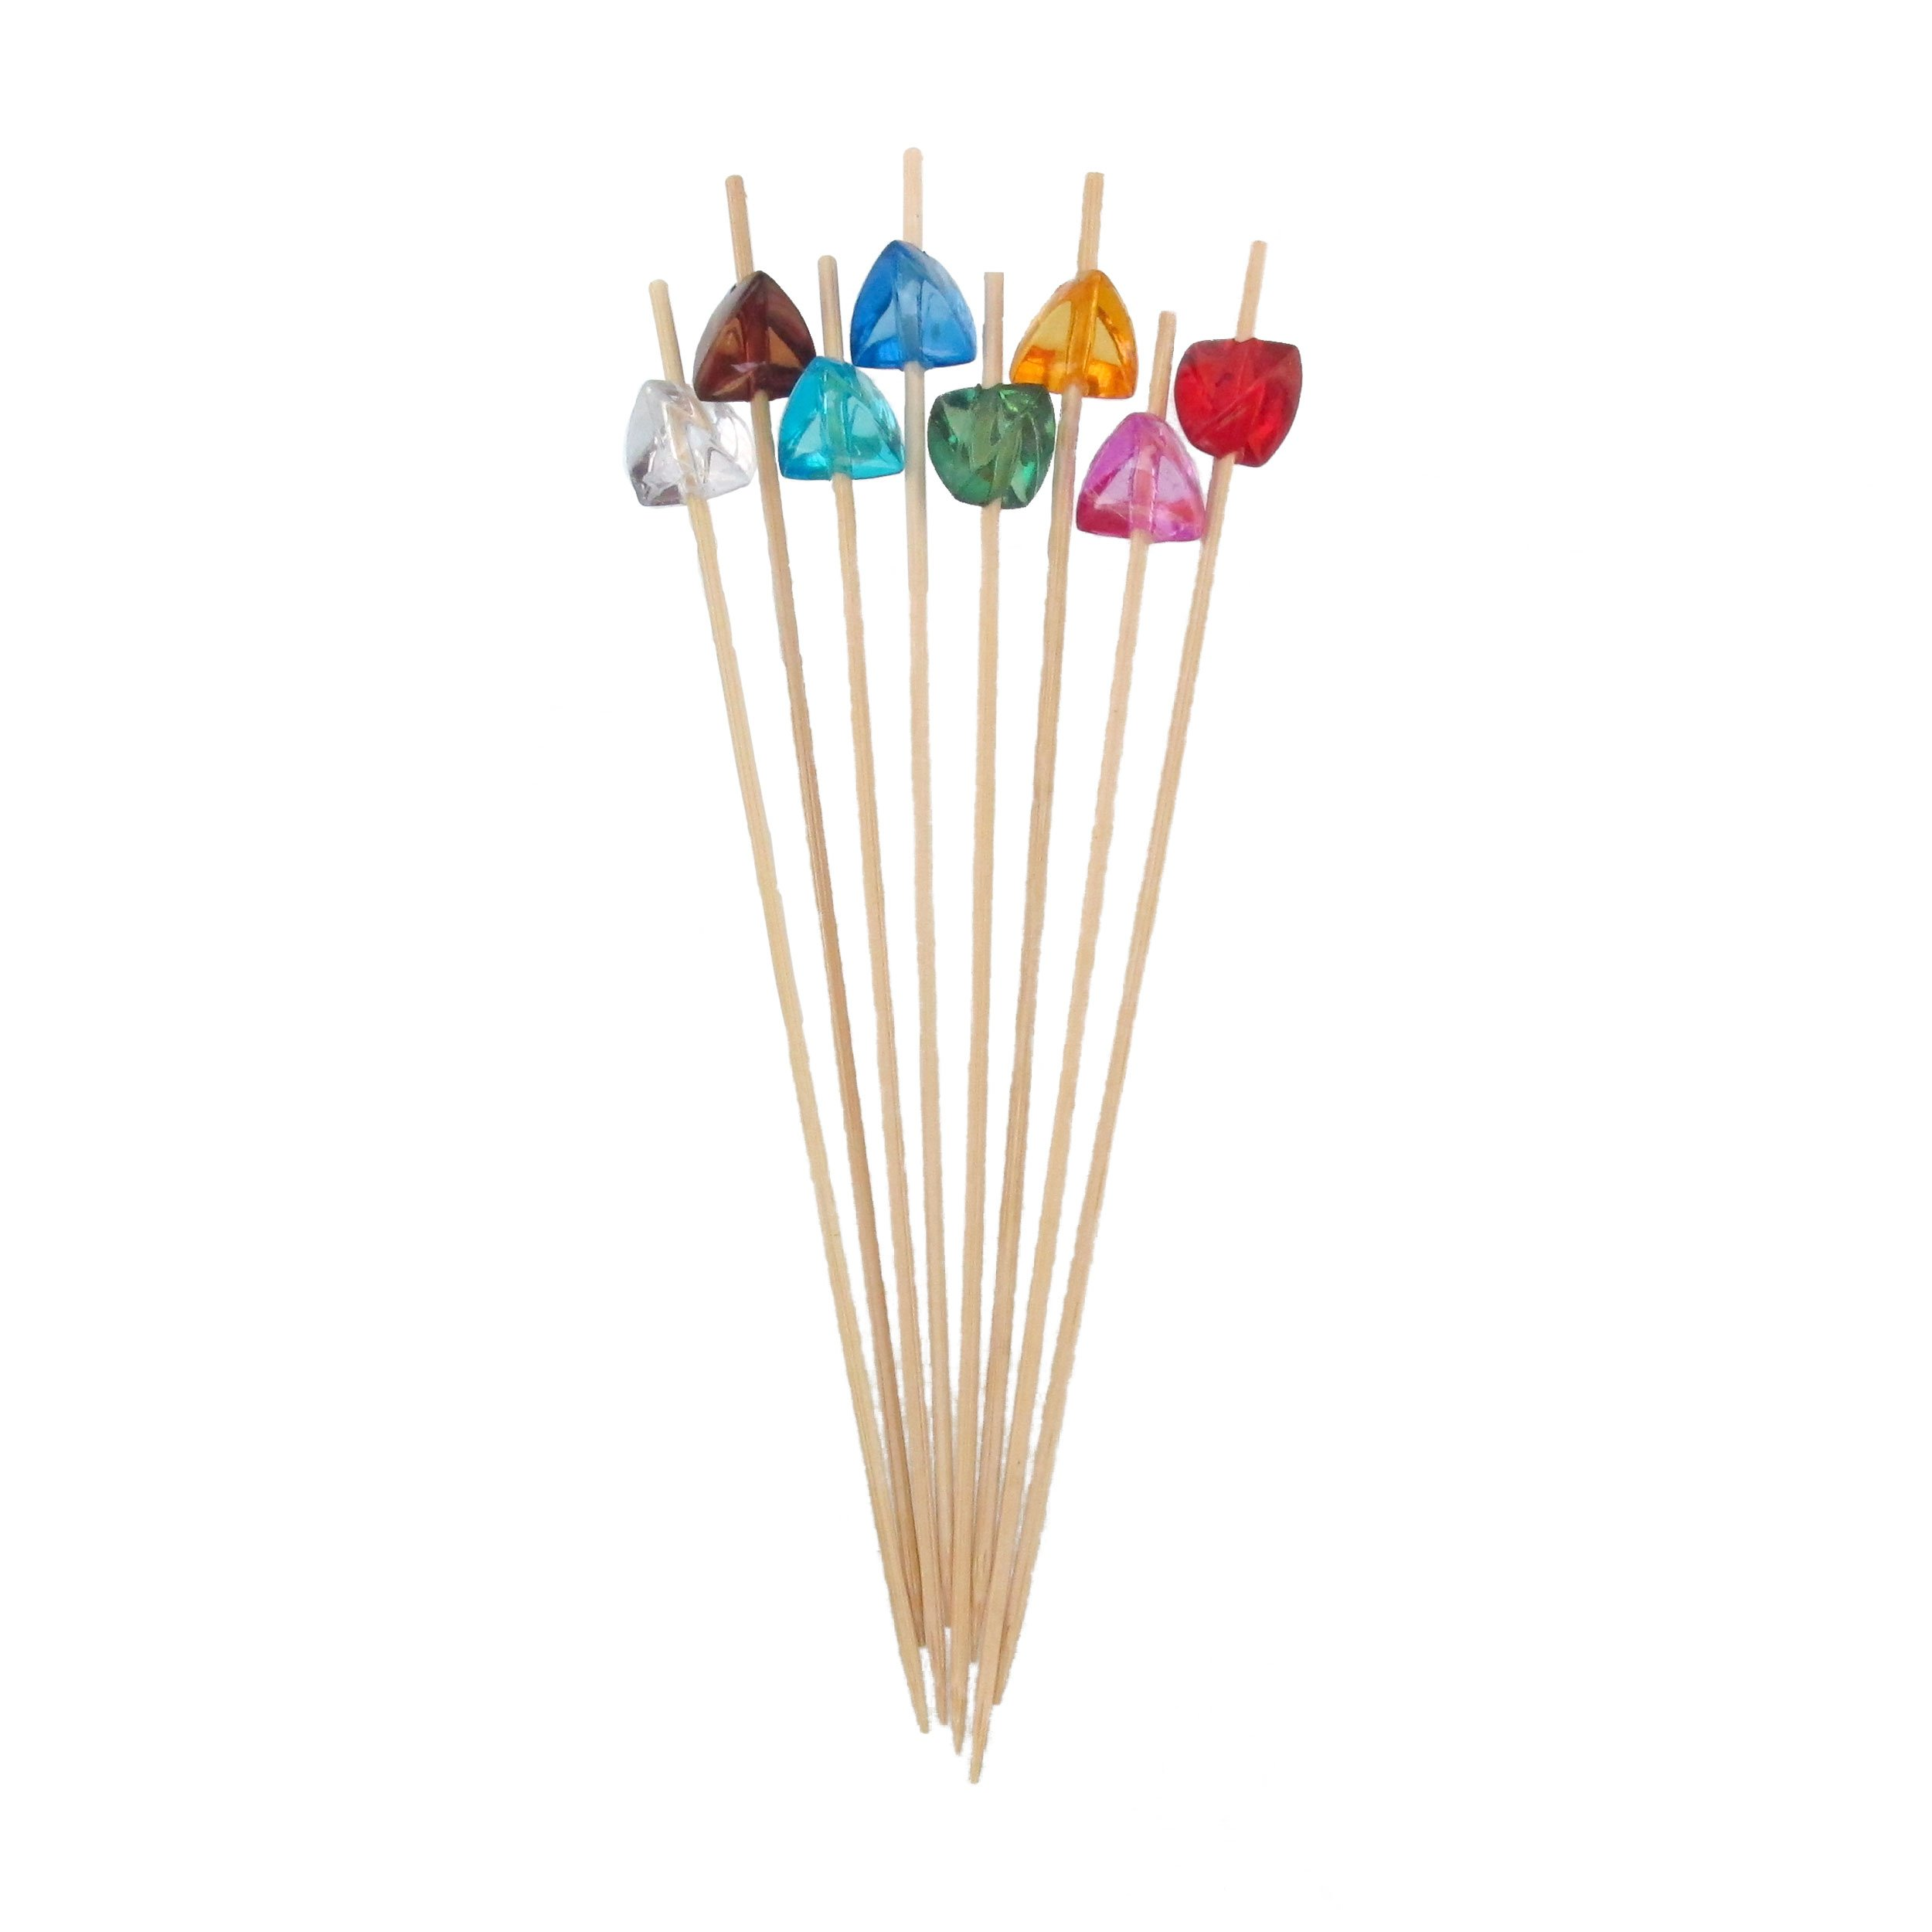 BambooMN 5.9'' Decorative Acrylic Gem End Bamboo Cocktail Fruit Sandwich Picks Skewers for Catered Events, Holiday's, Restaurants or Buffets Party Supplies, 100 Pcs